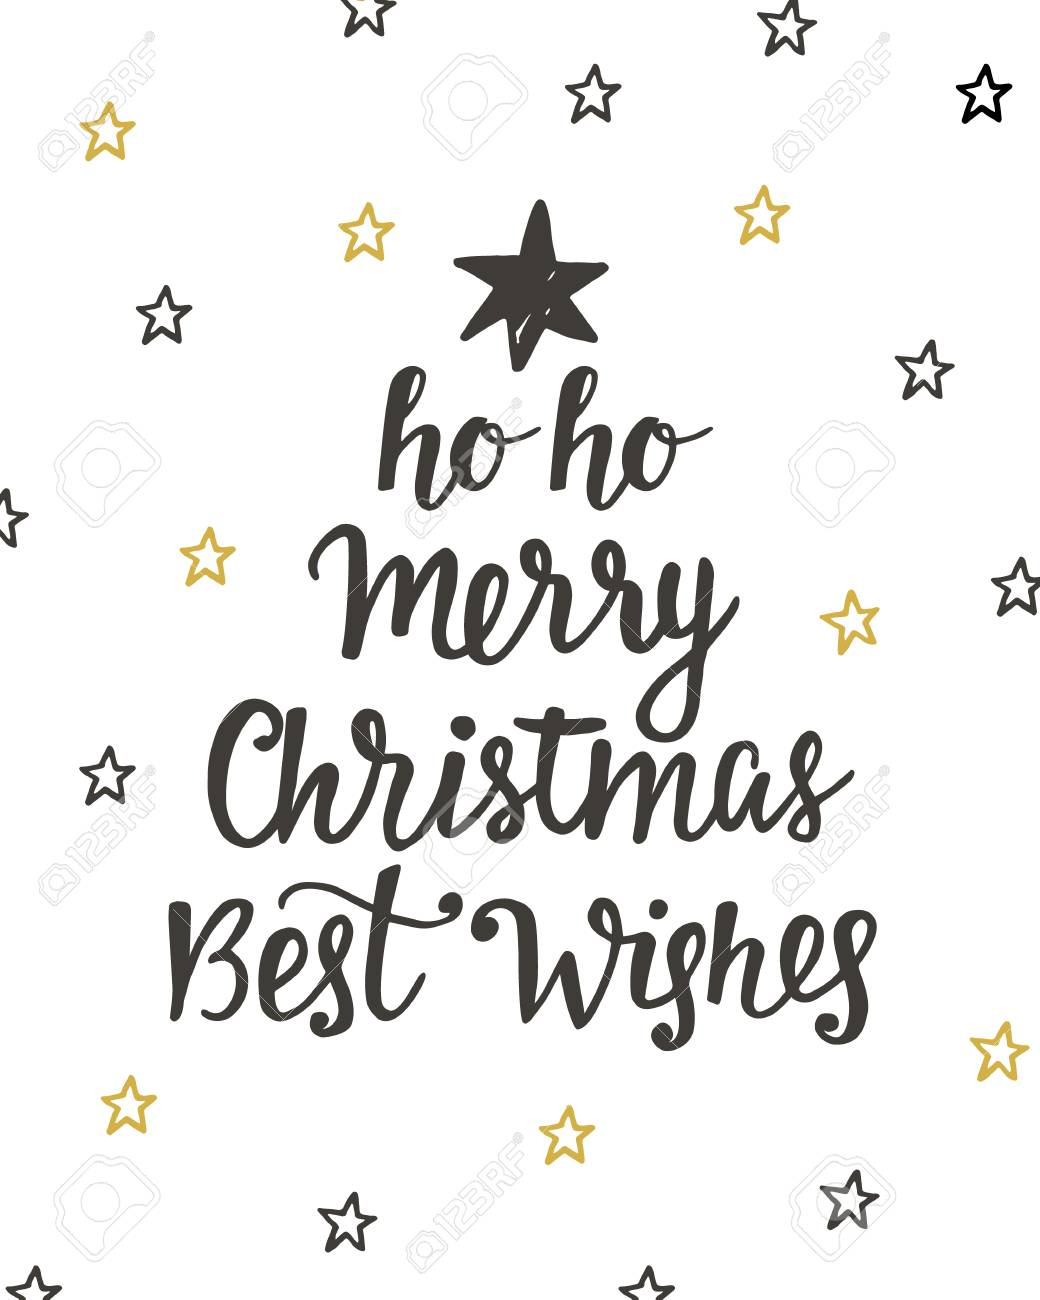 Merry Christmas Best Wishes Holidays Hand Written Lettering